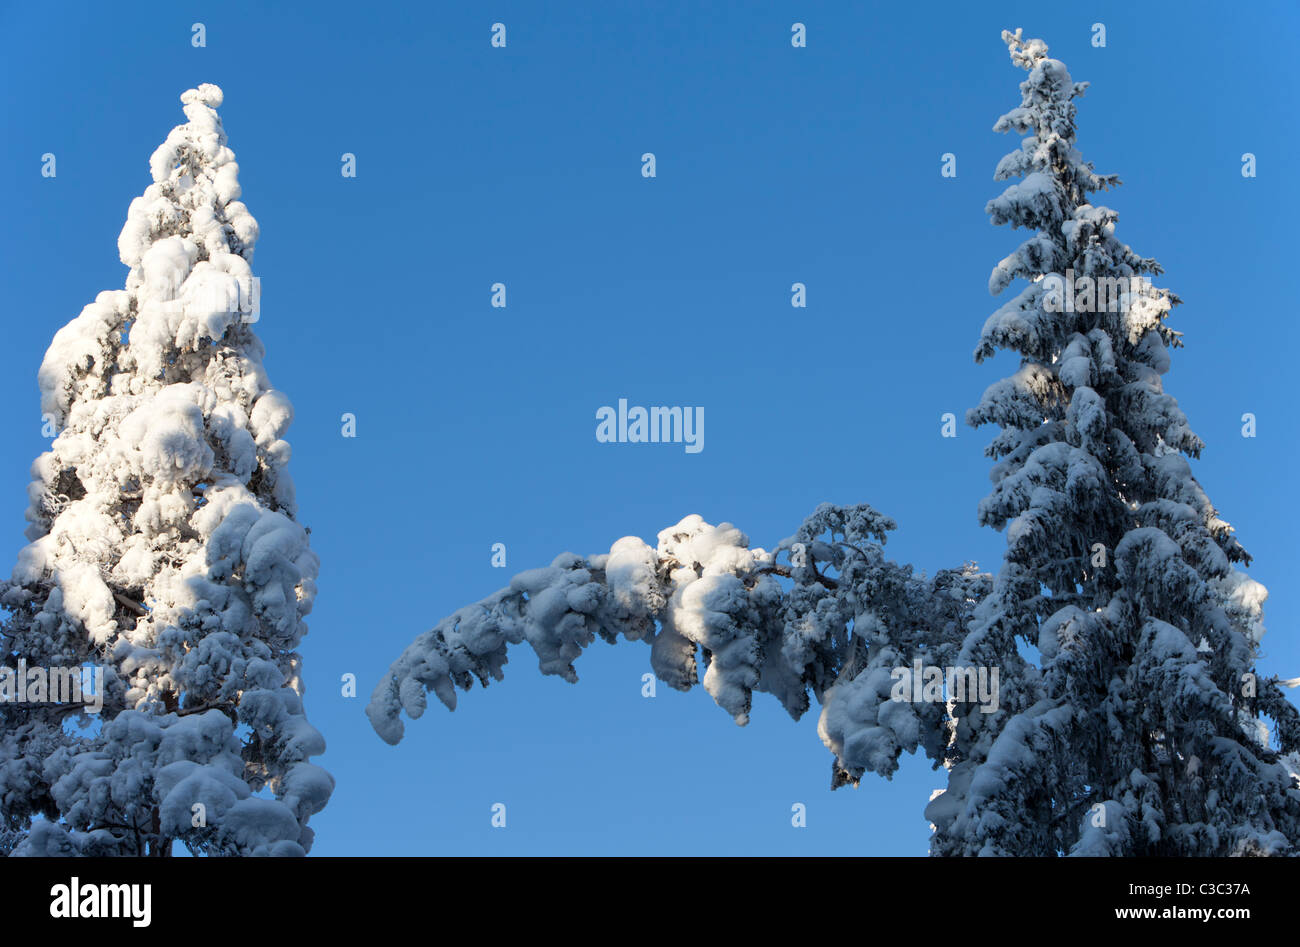 View of snow covered spruce ( Picea Abies ) treetops in the forest - Stock Image